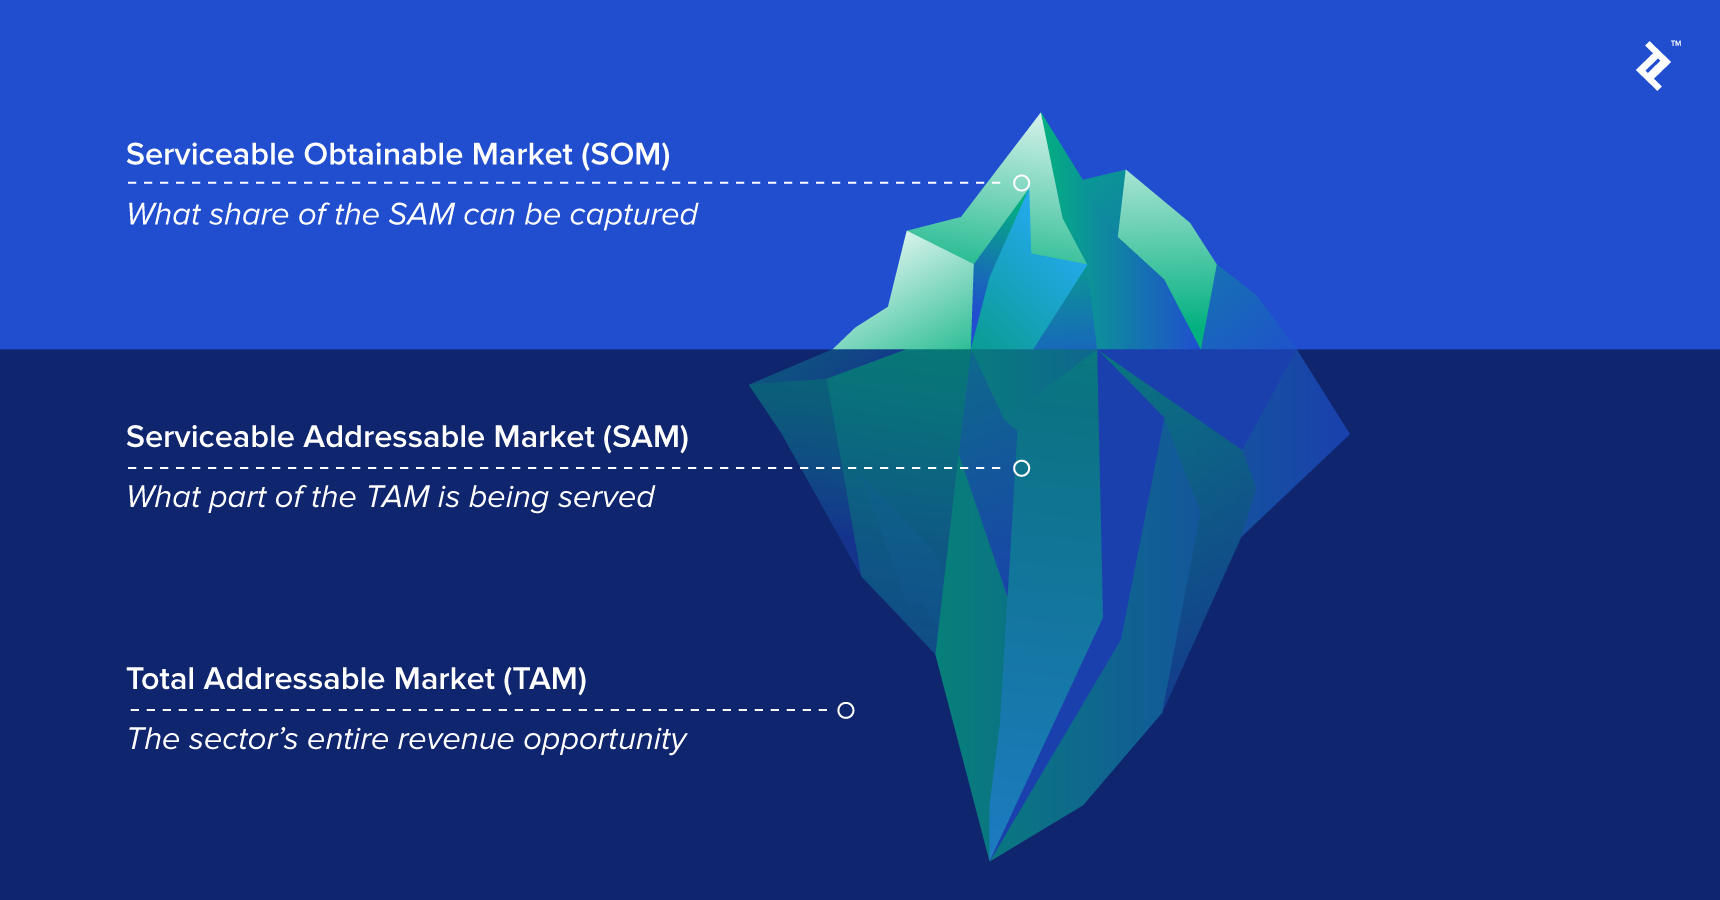 A growing and increasing addressable marketplace